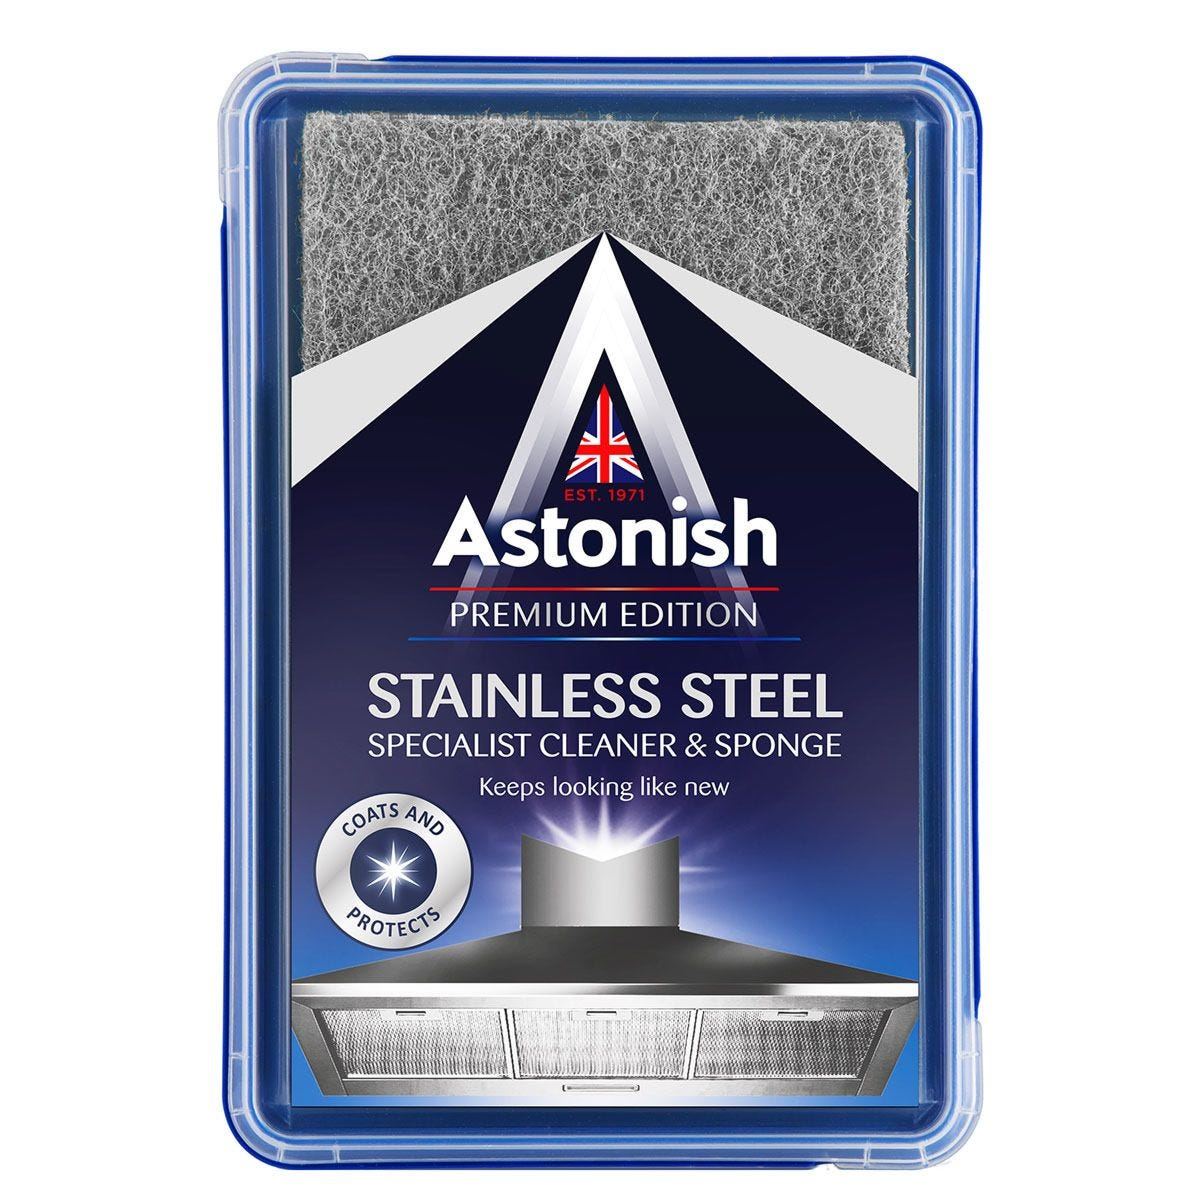 Astonish Specialist Stainless Steel Cleaner and Sponge